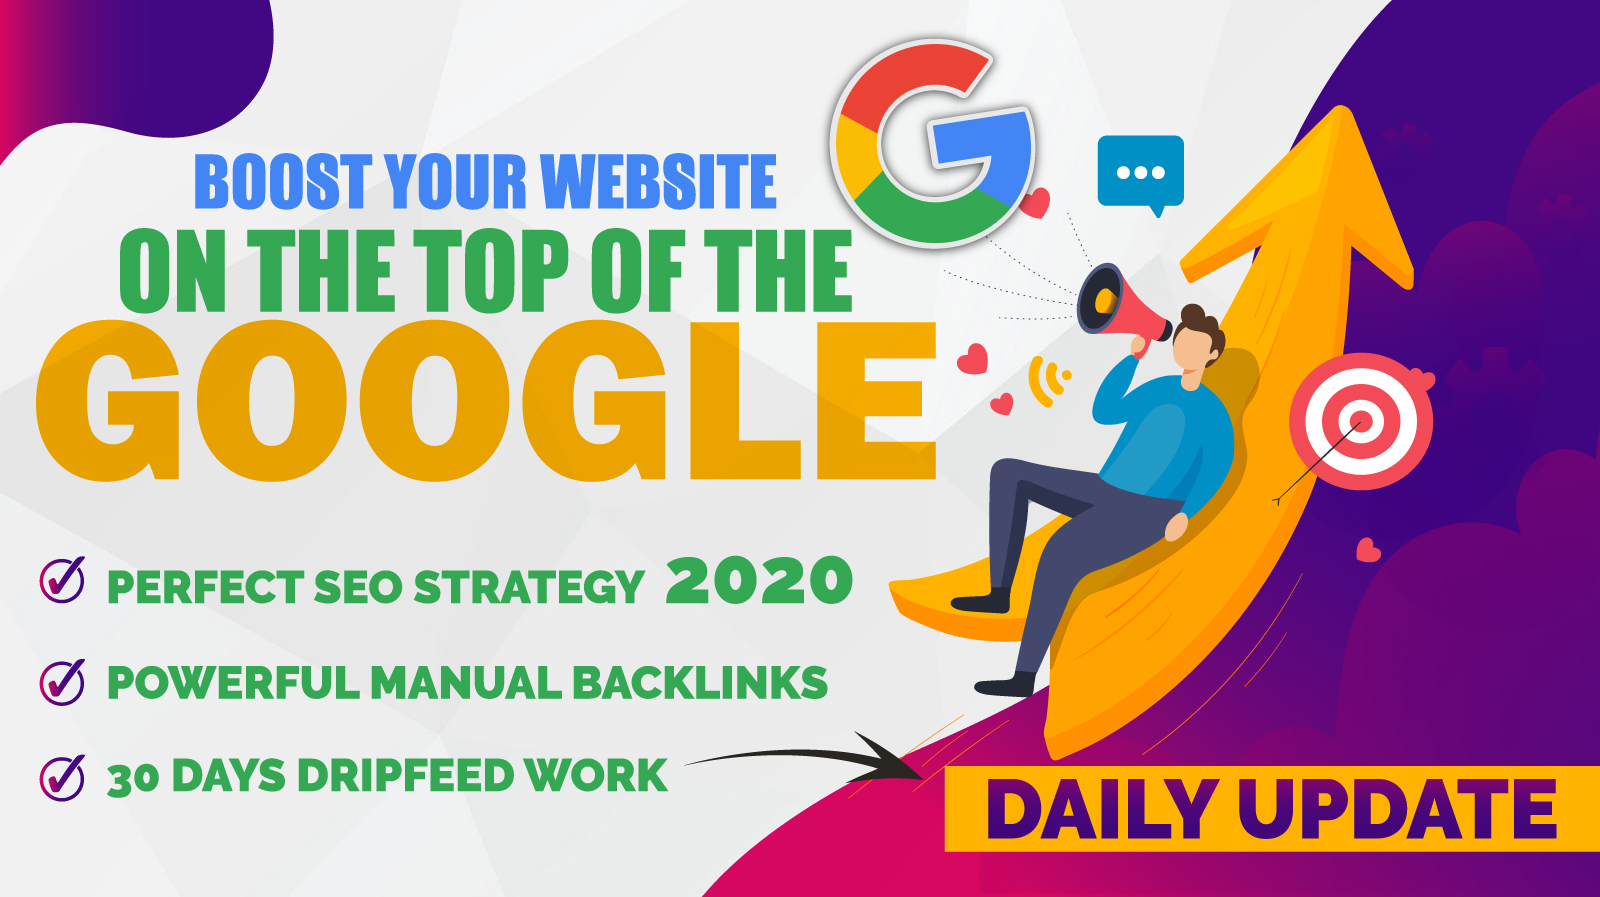 Boost your website on the #1 of google with out 30 days drip feed packages